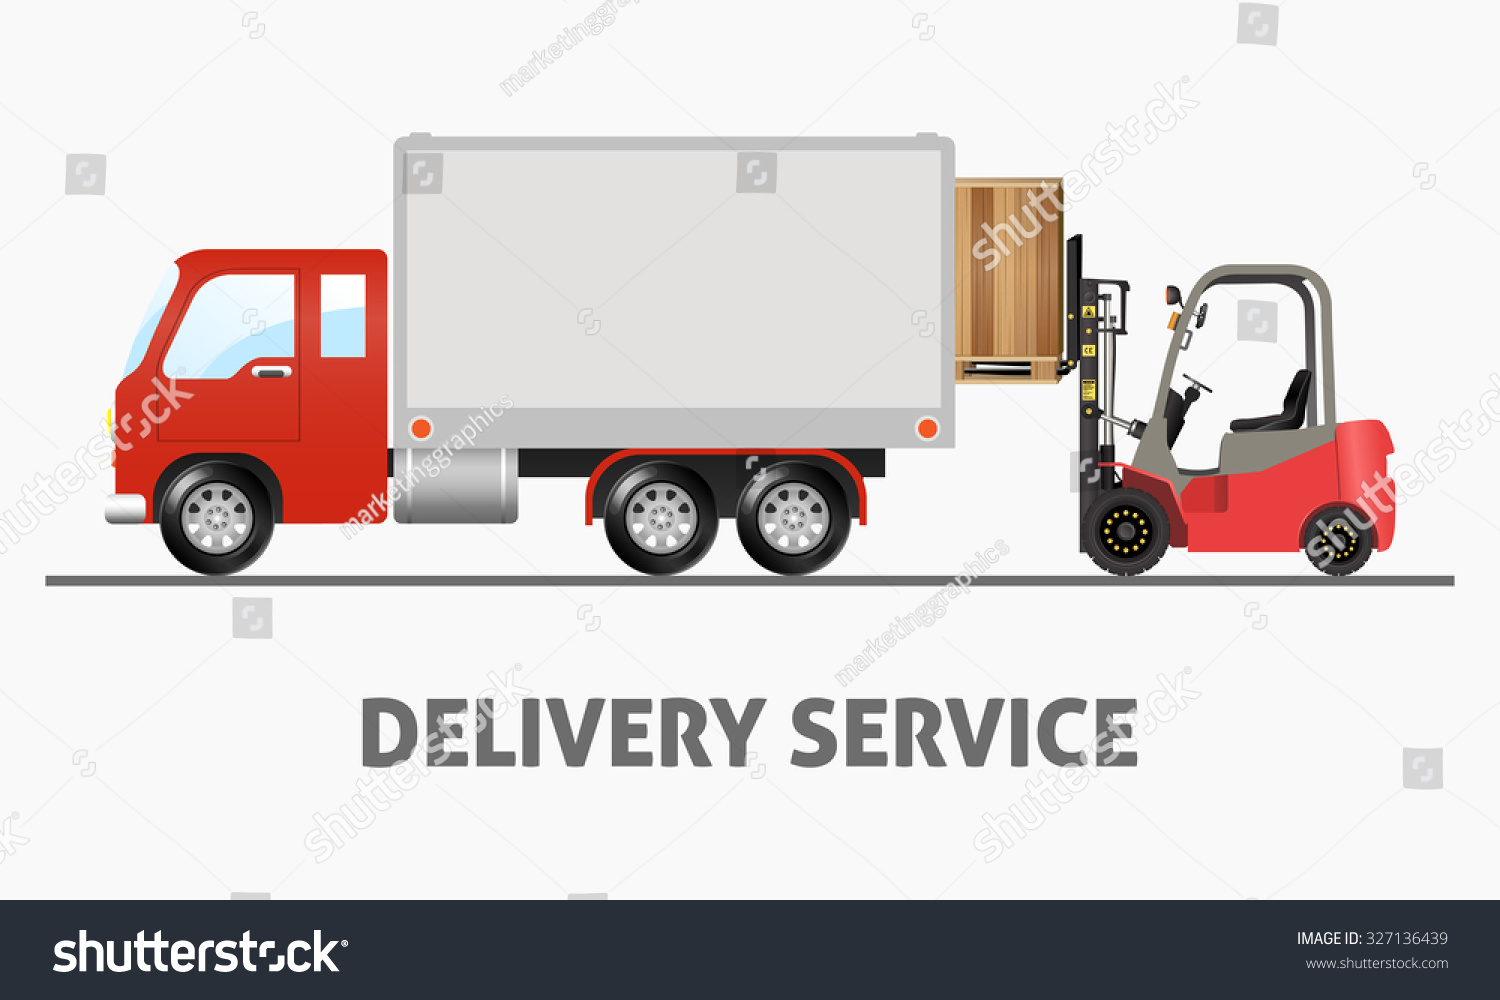 Delivery Service Shipping Truck and Forklift